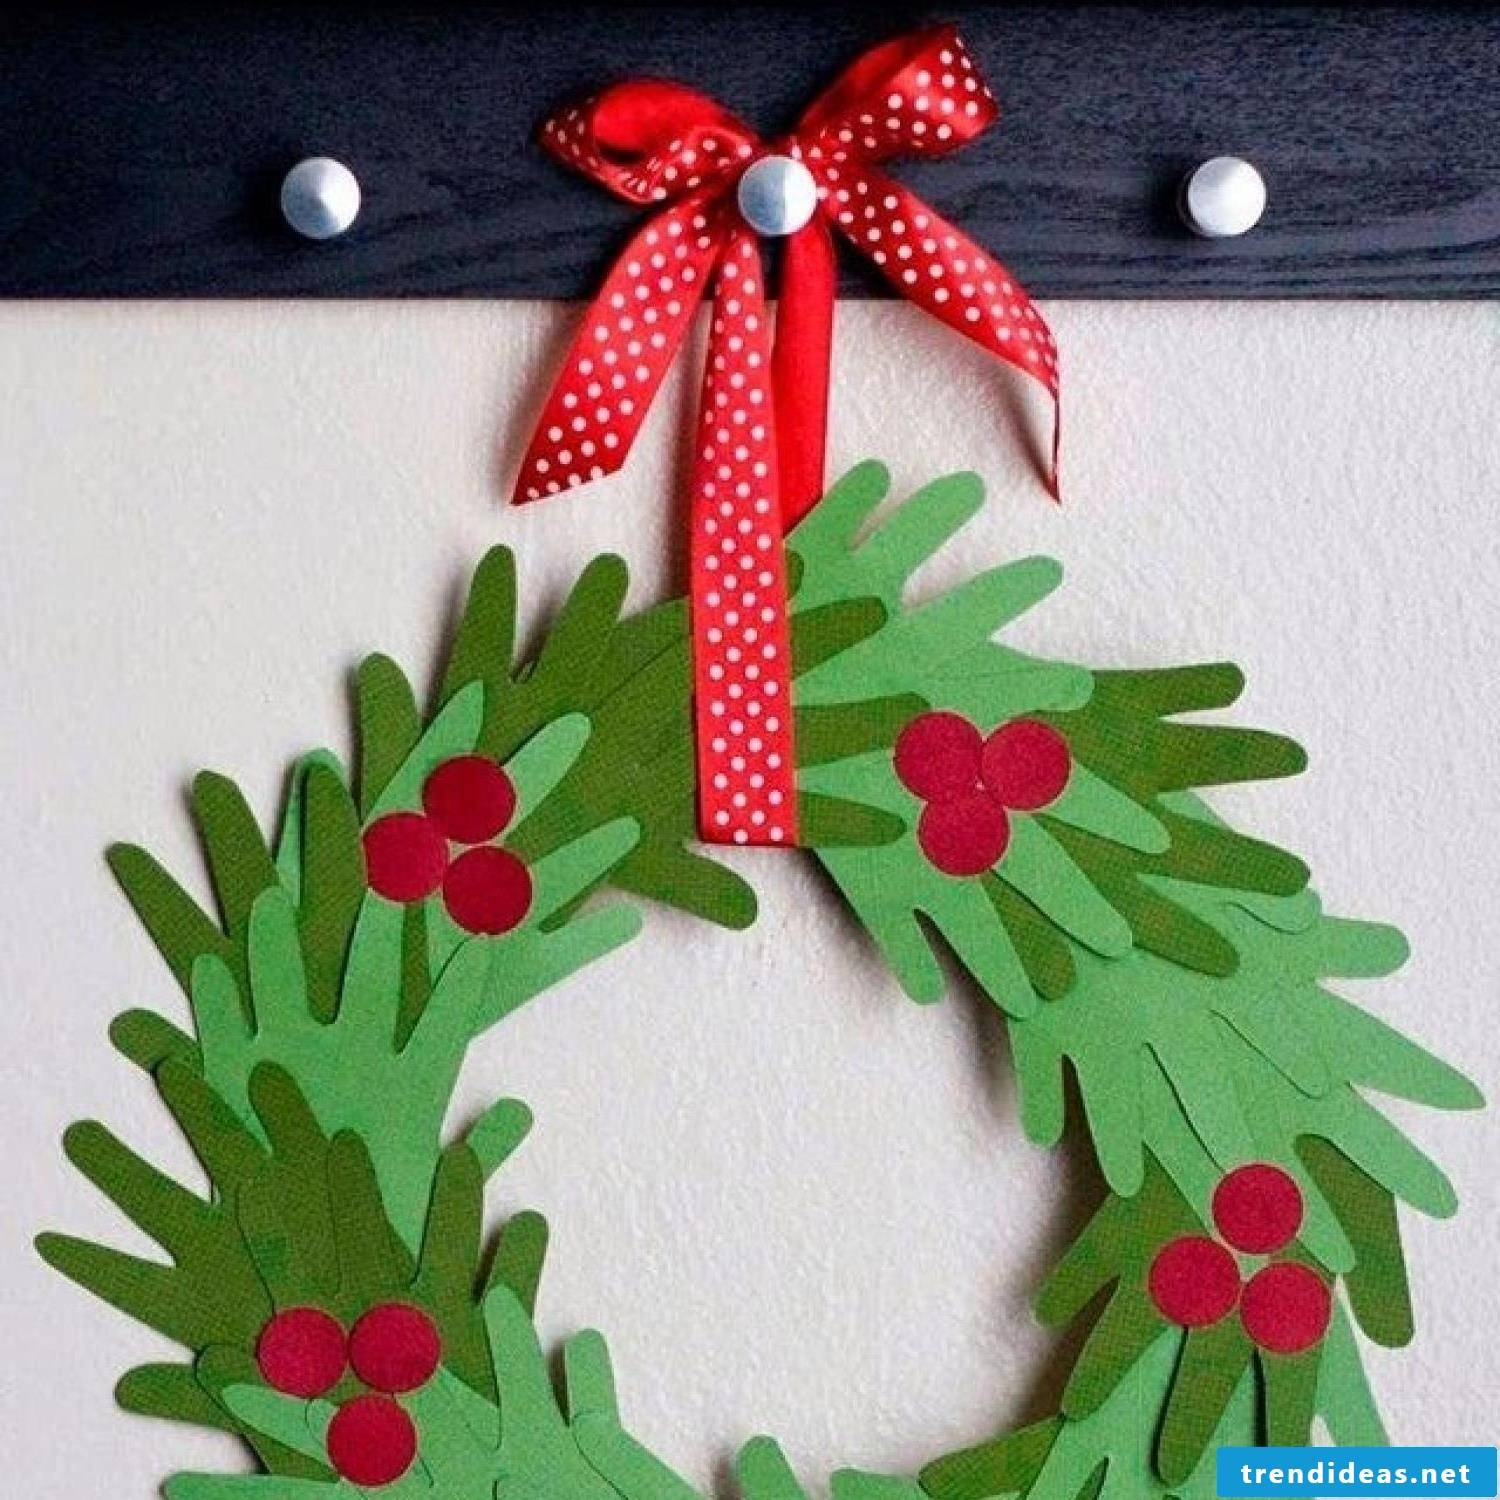 Christmas crafts with children - make Christmas wreath yourself